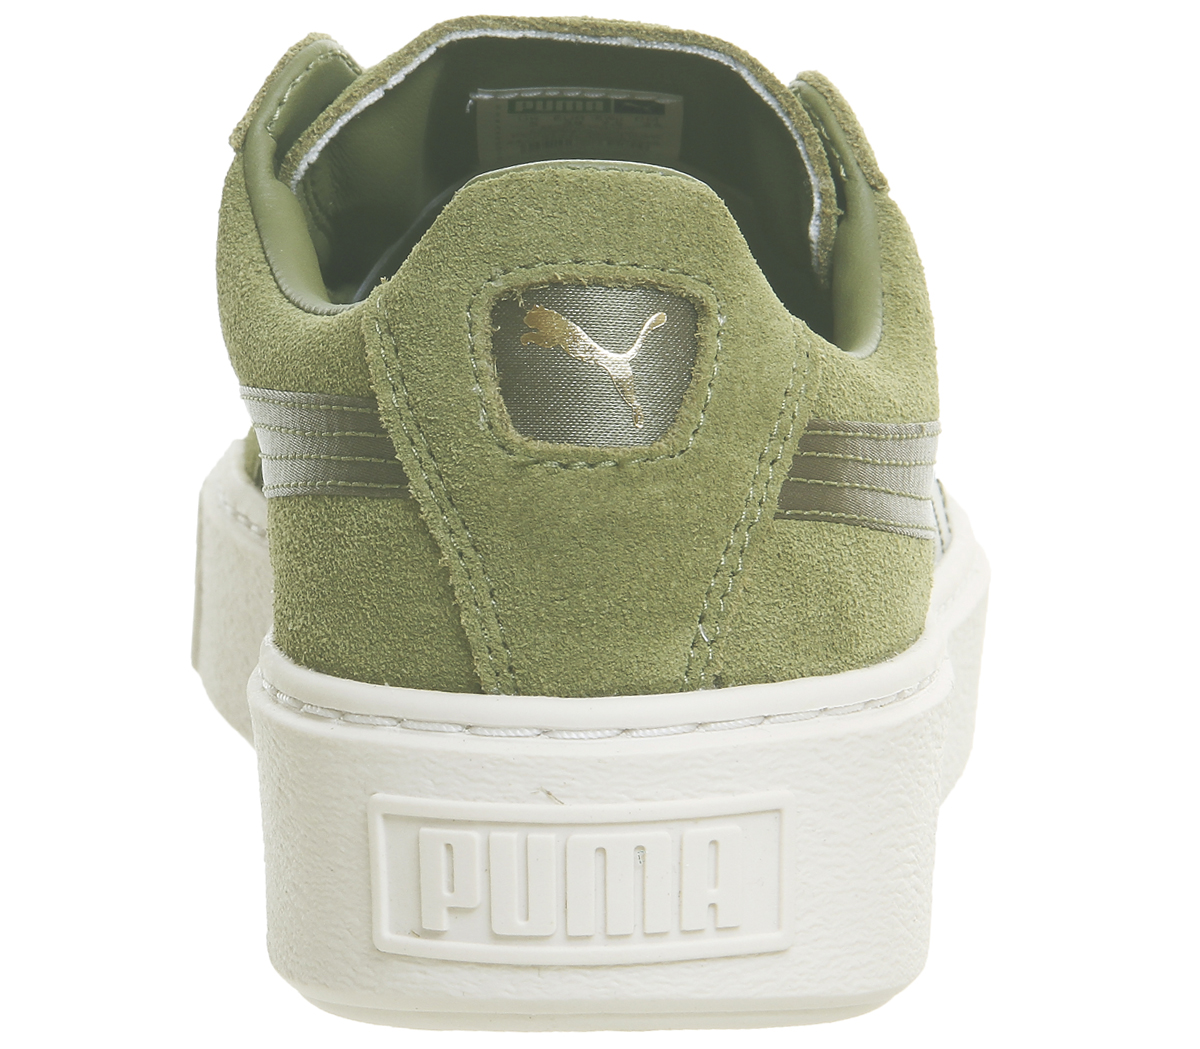 Womens Puma Suede Platform Trainers OLIVE BRANCH GOLD SATIN Trainers ... 604811320